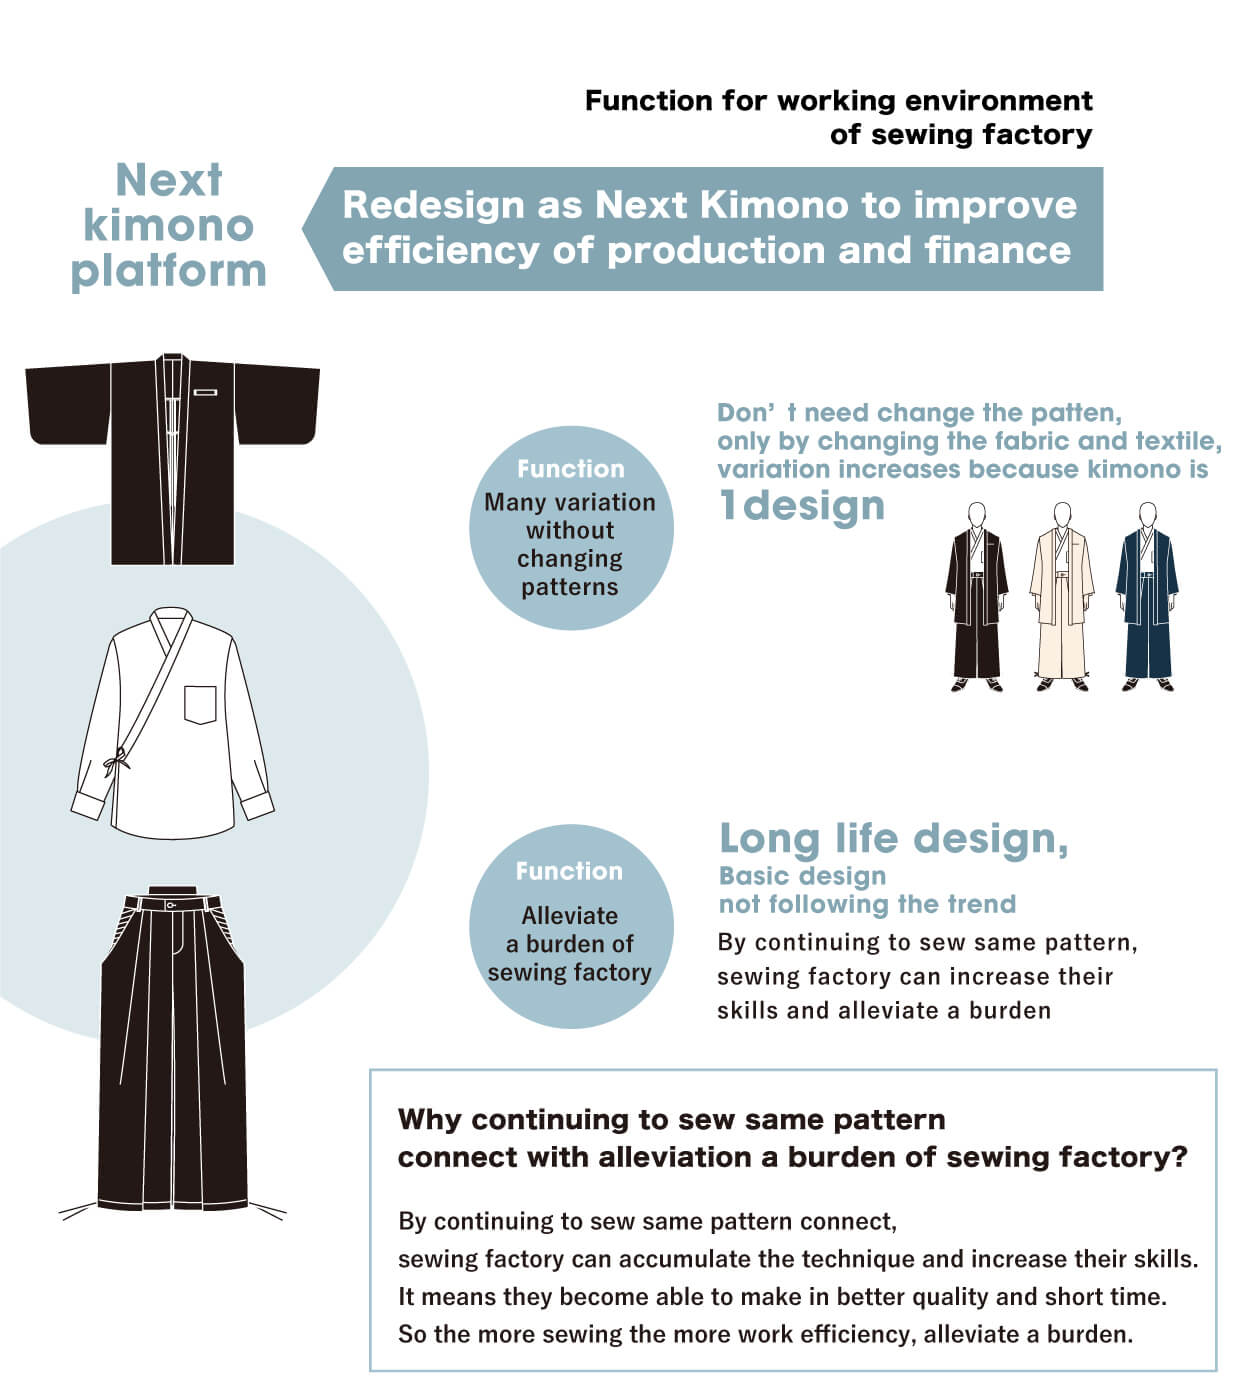 Redesign as Next Kimono to improve efficiency of production and finance